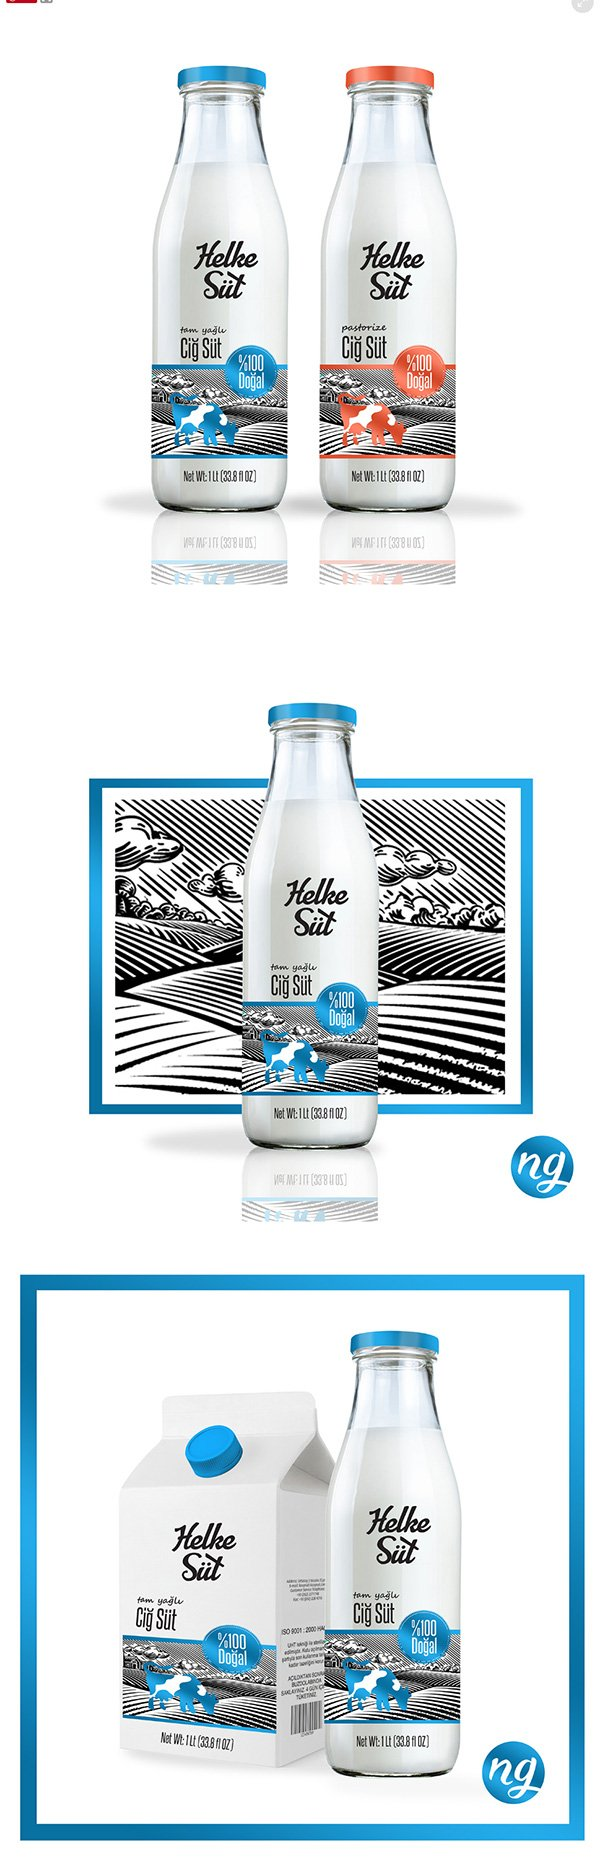 Helke Milk Packaging Design